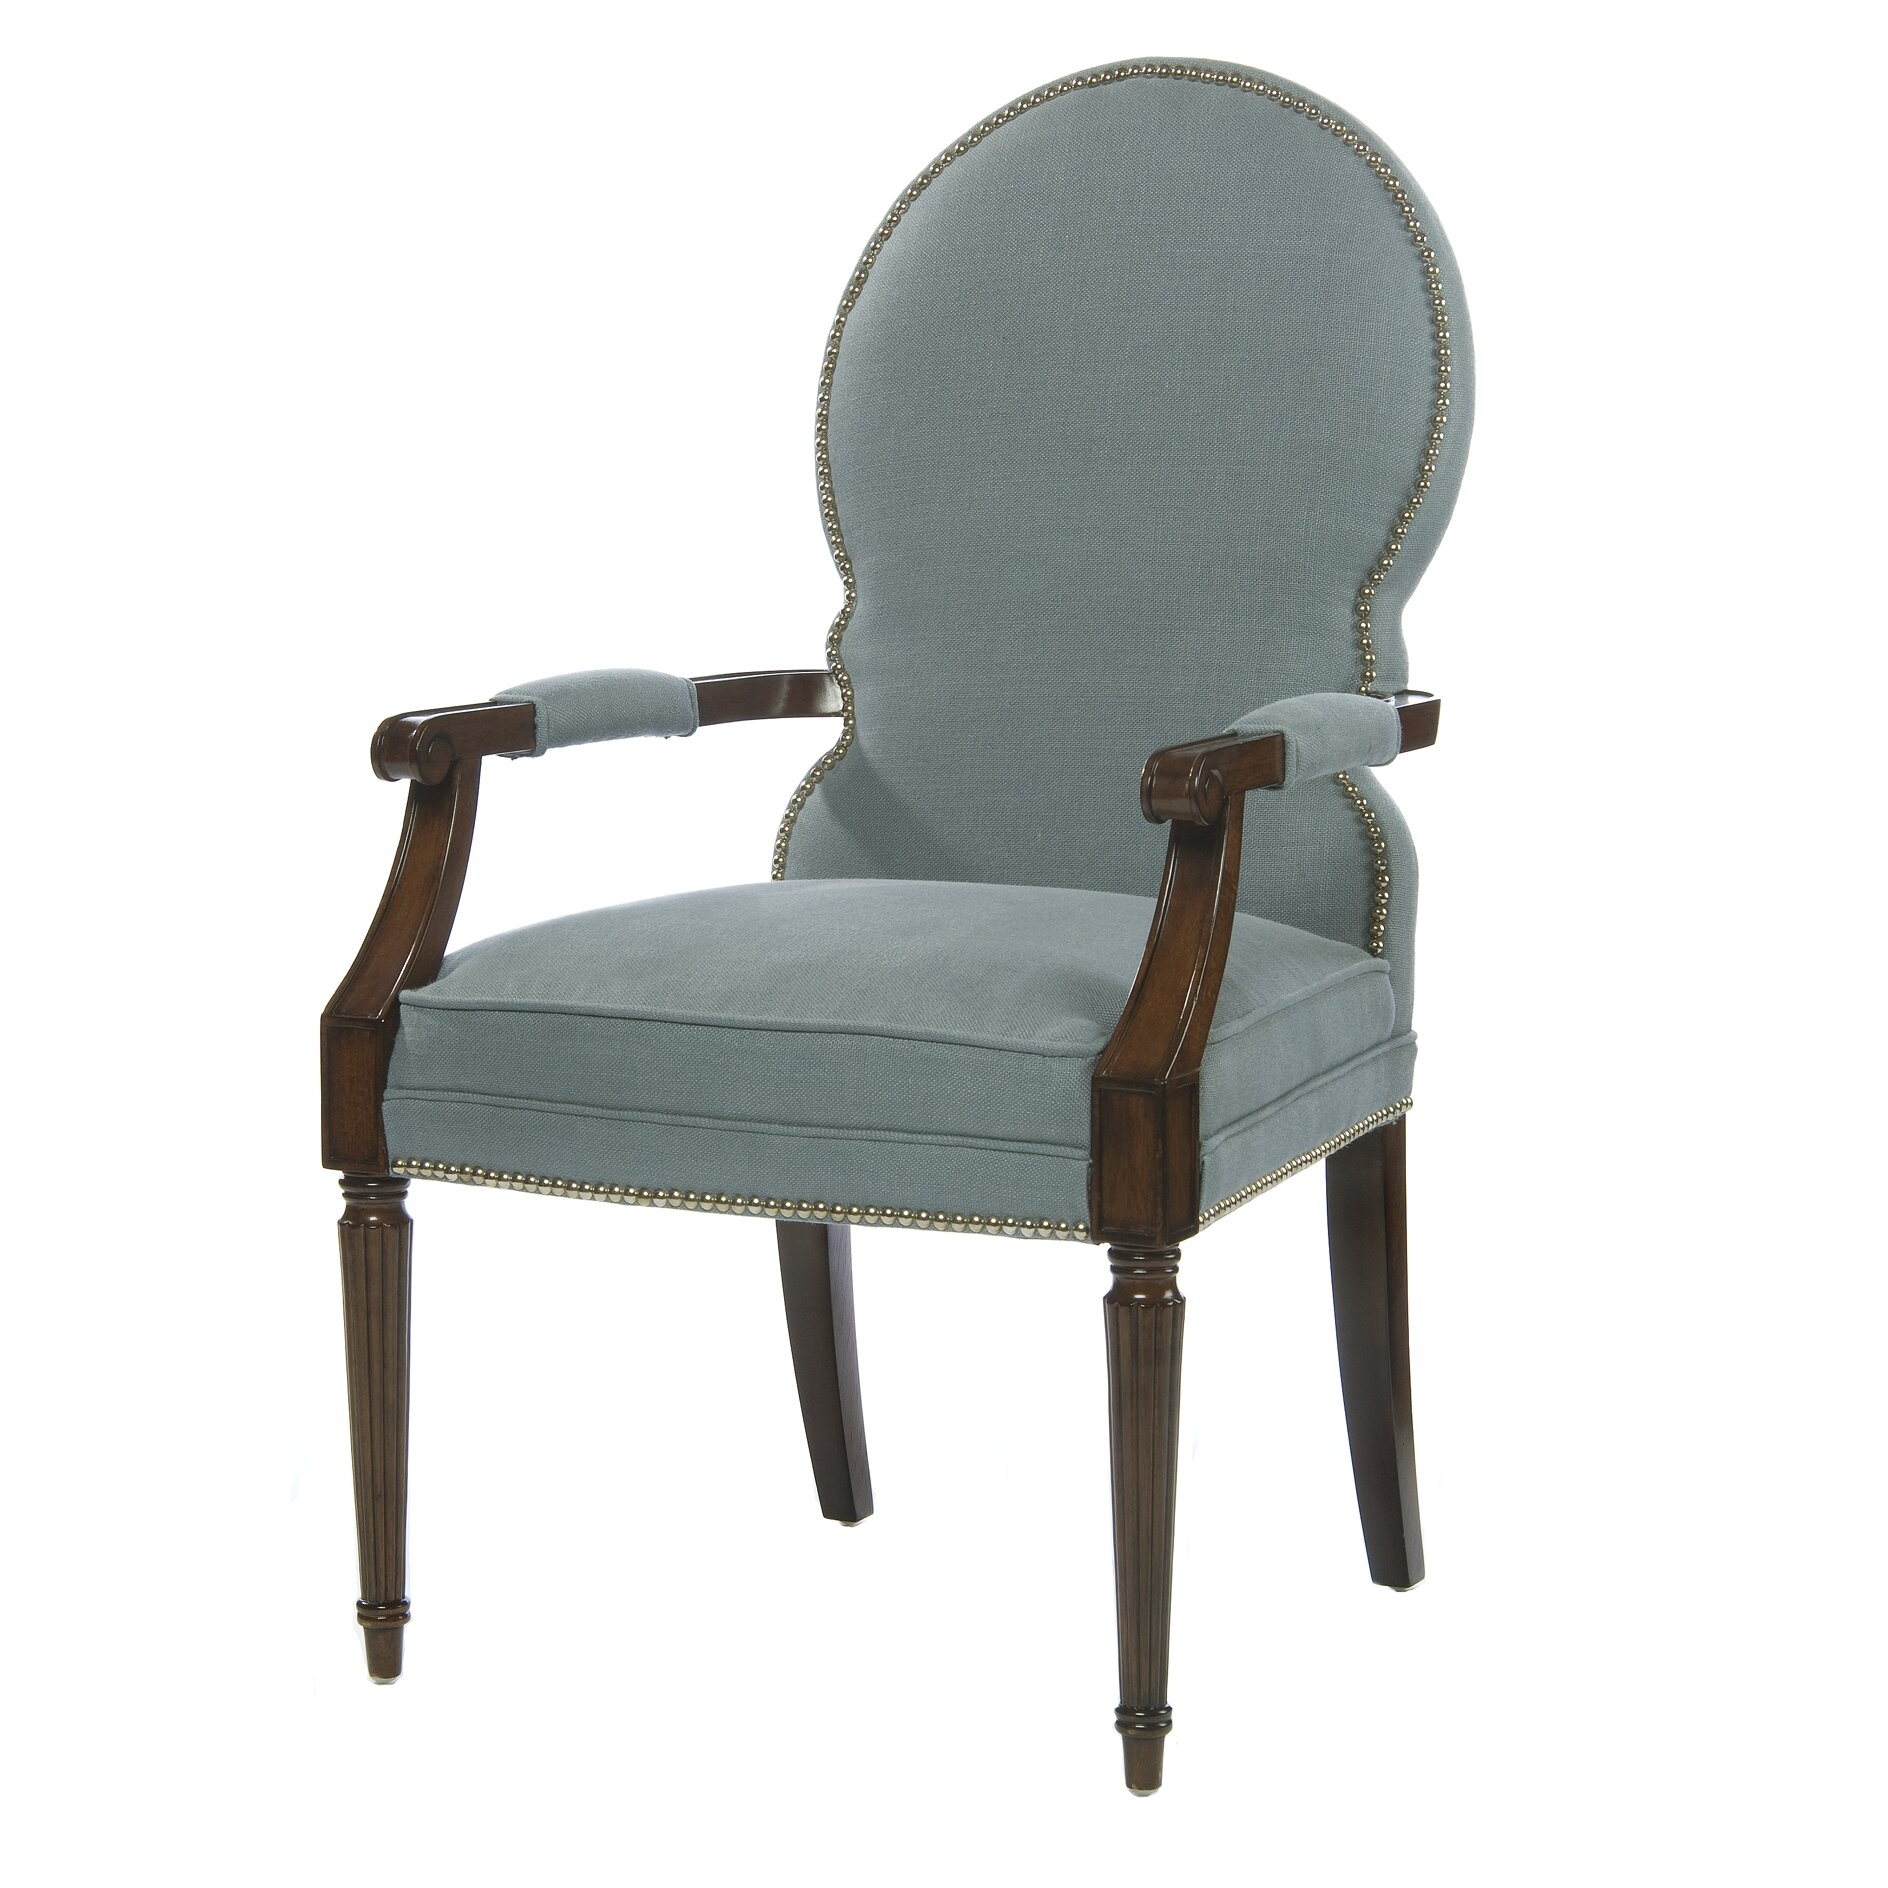 belle meade furniture - belle meade chairs great furniture